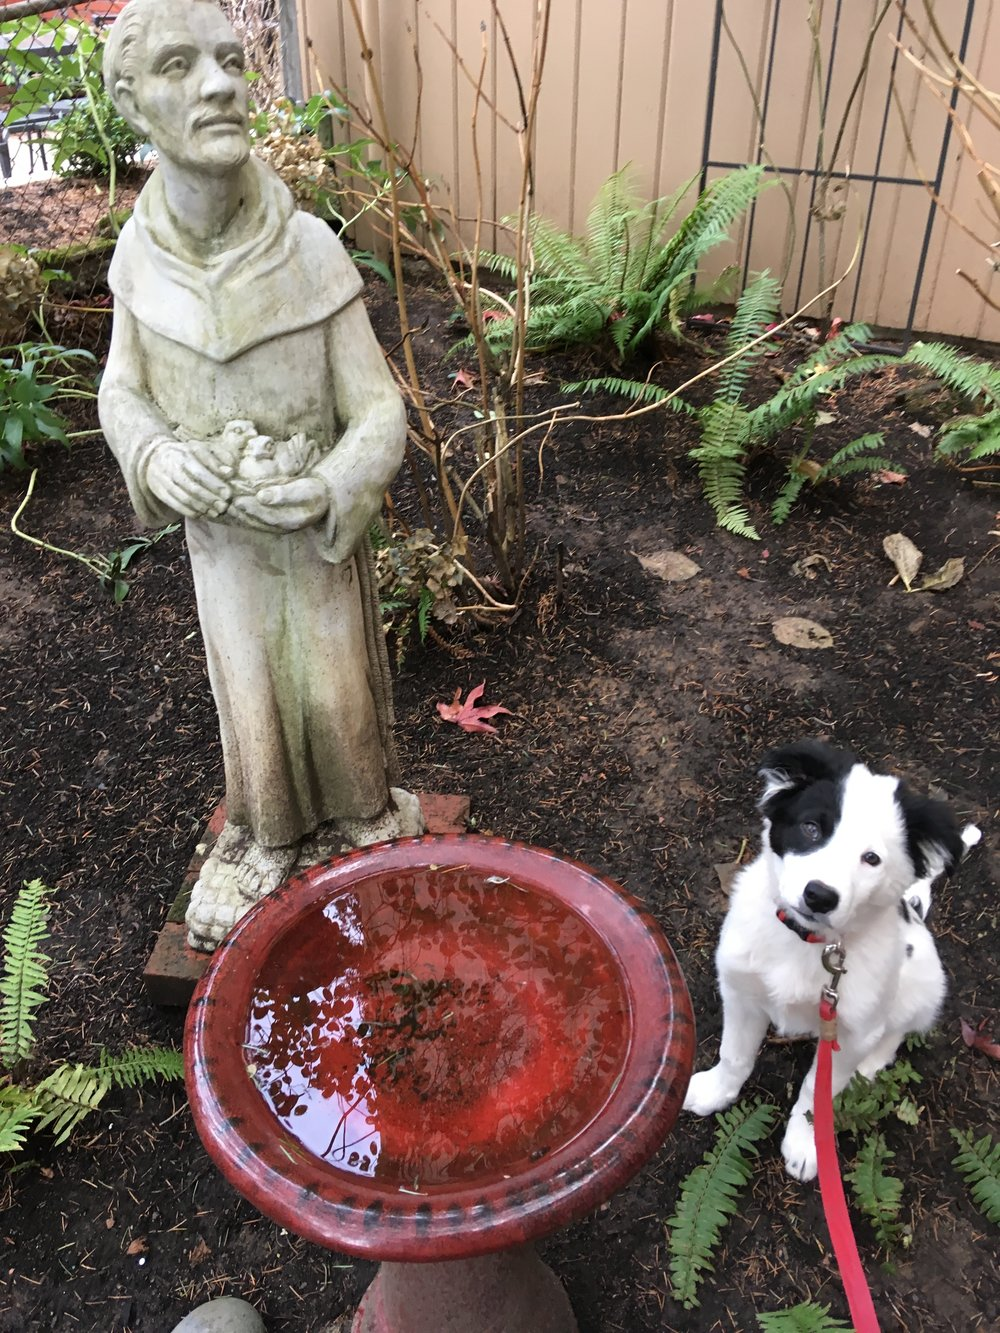 Roger, a parishioner's puppy, enjoys the company of St. Francis in our Parish gardens.